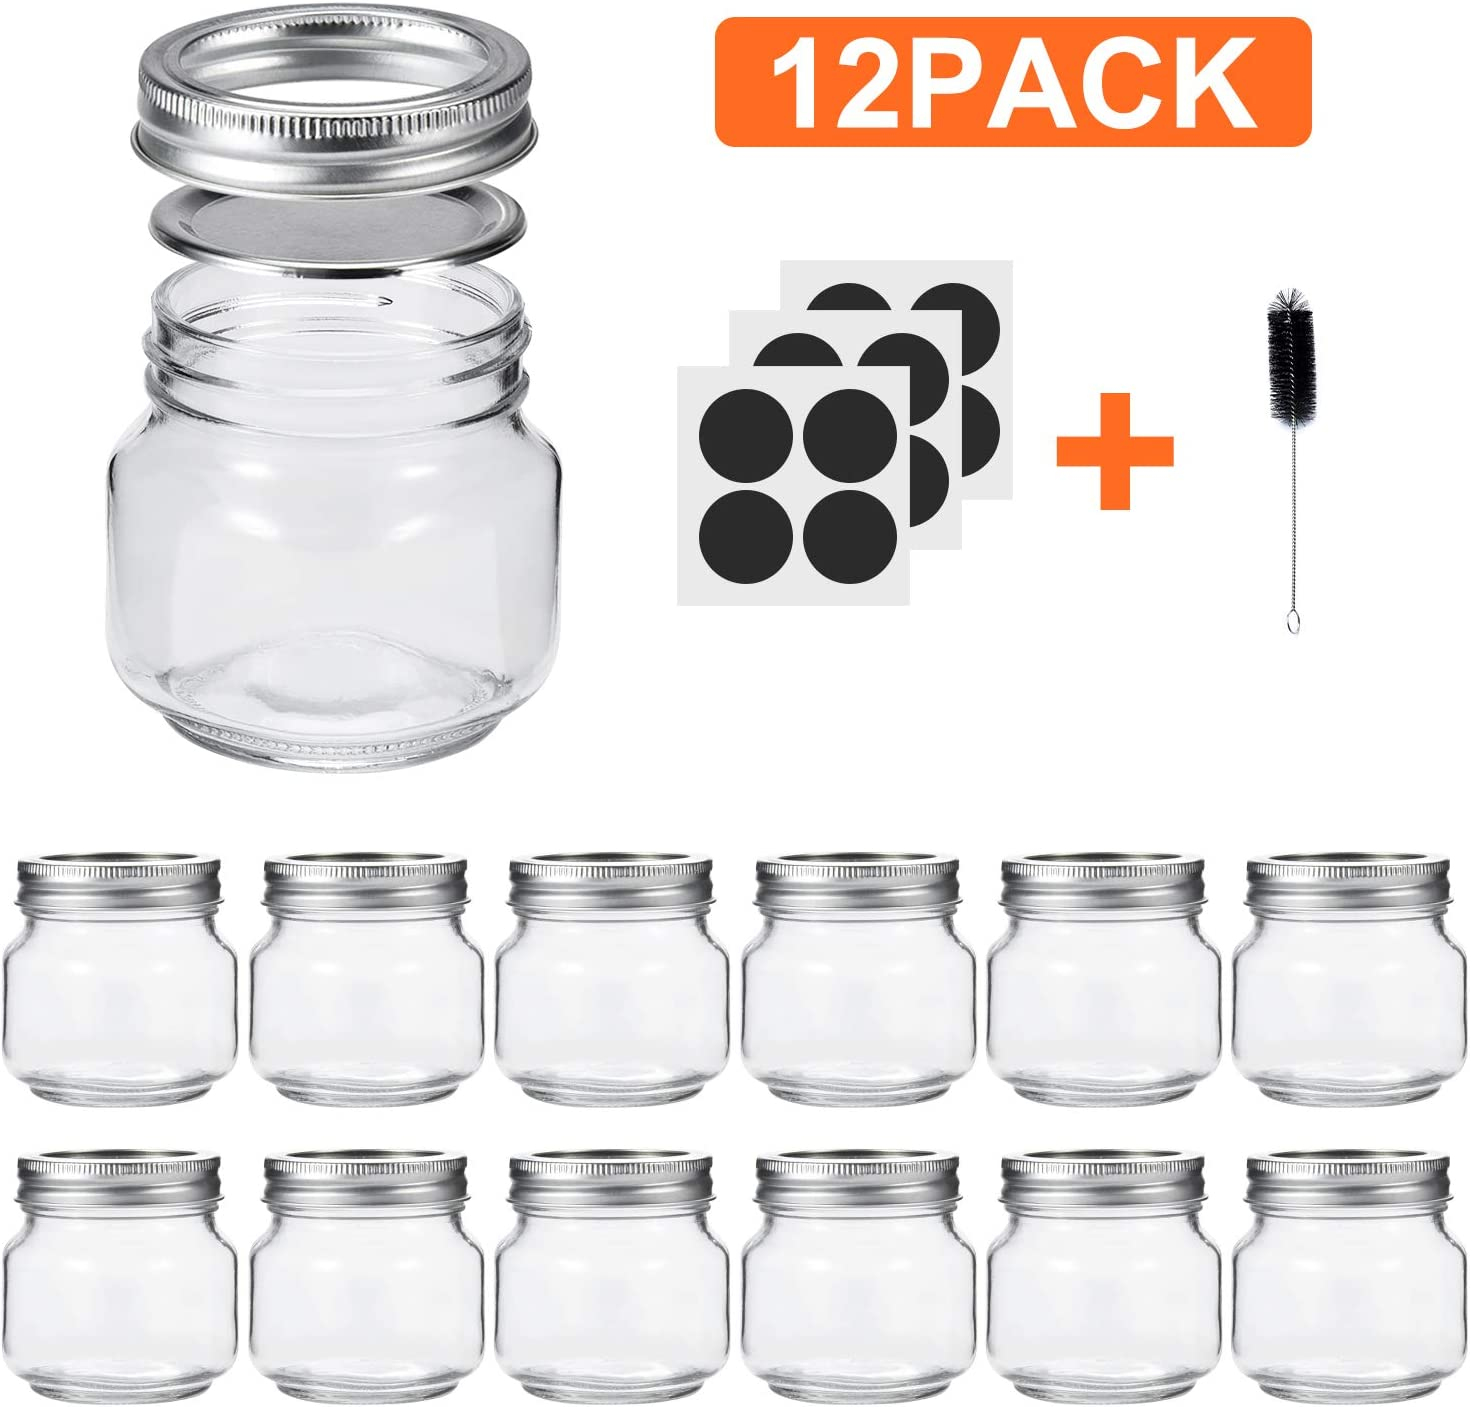 Glotoch Mason Jars 8OZ With Regular Lids and Bands, Ideal for Jam, Honey, Wedding Favors, Shower Favors, Baby Foods, DIY Magnetic Spice Jars, 12 PACK, Included 12 Chalkboard Labels and1 brush